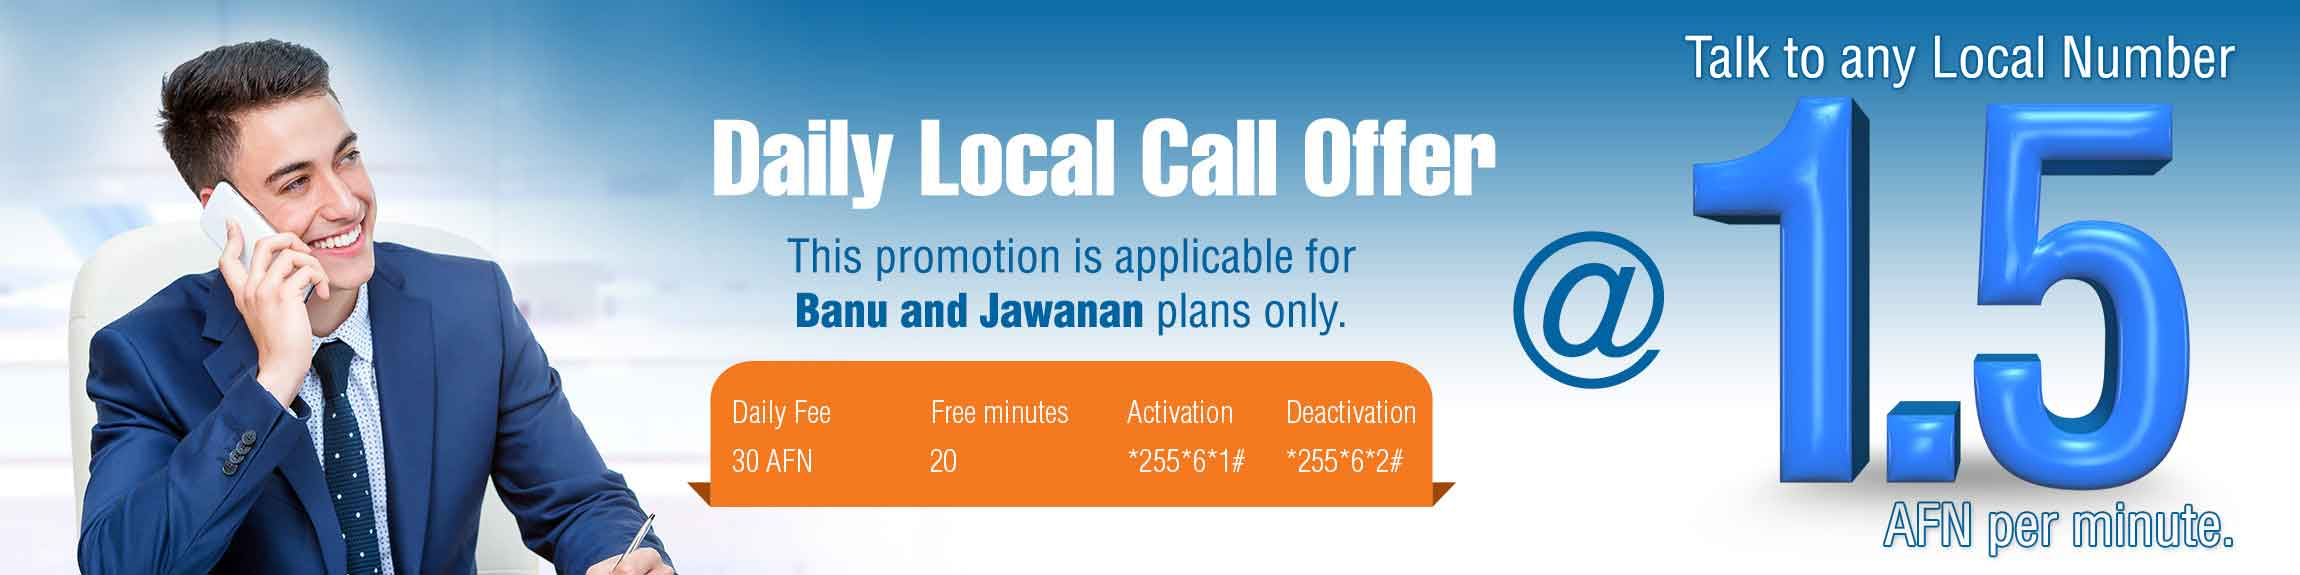 Daily-Local-Call-Offer-English